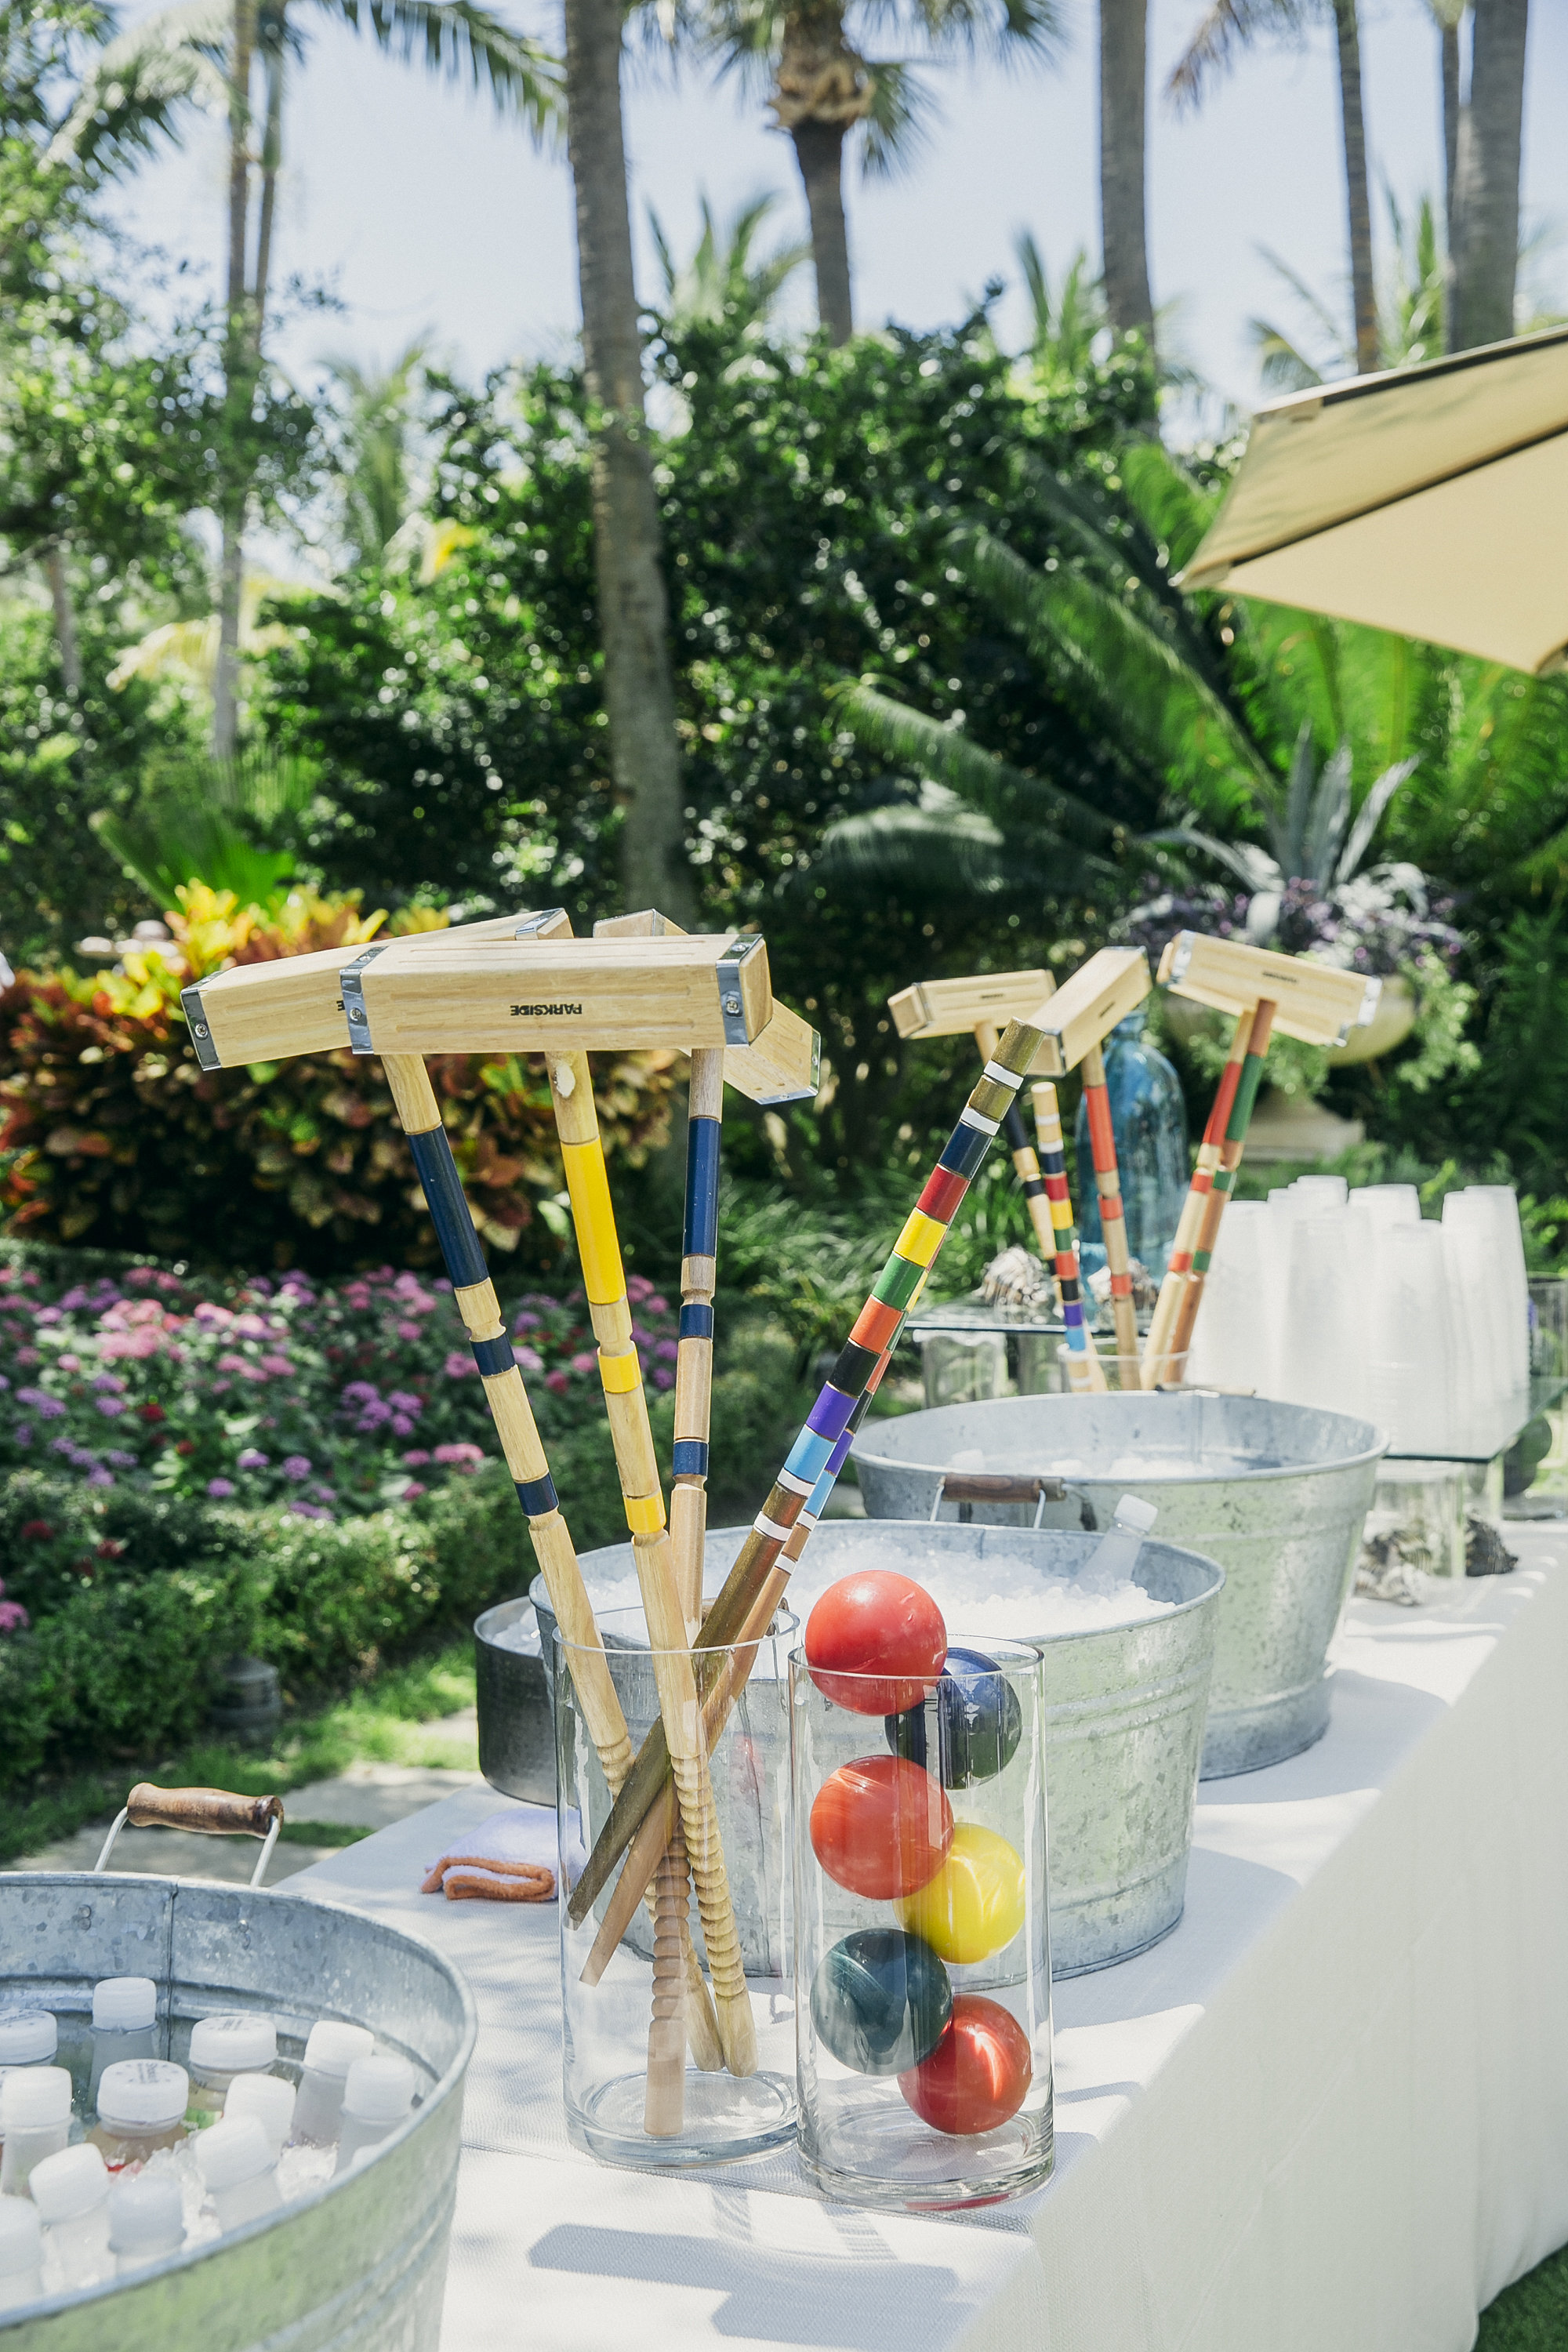 Engage 16 at The Breakers: Croquet Lawn Lunch - Engage Summits